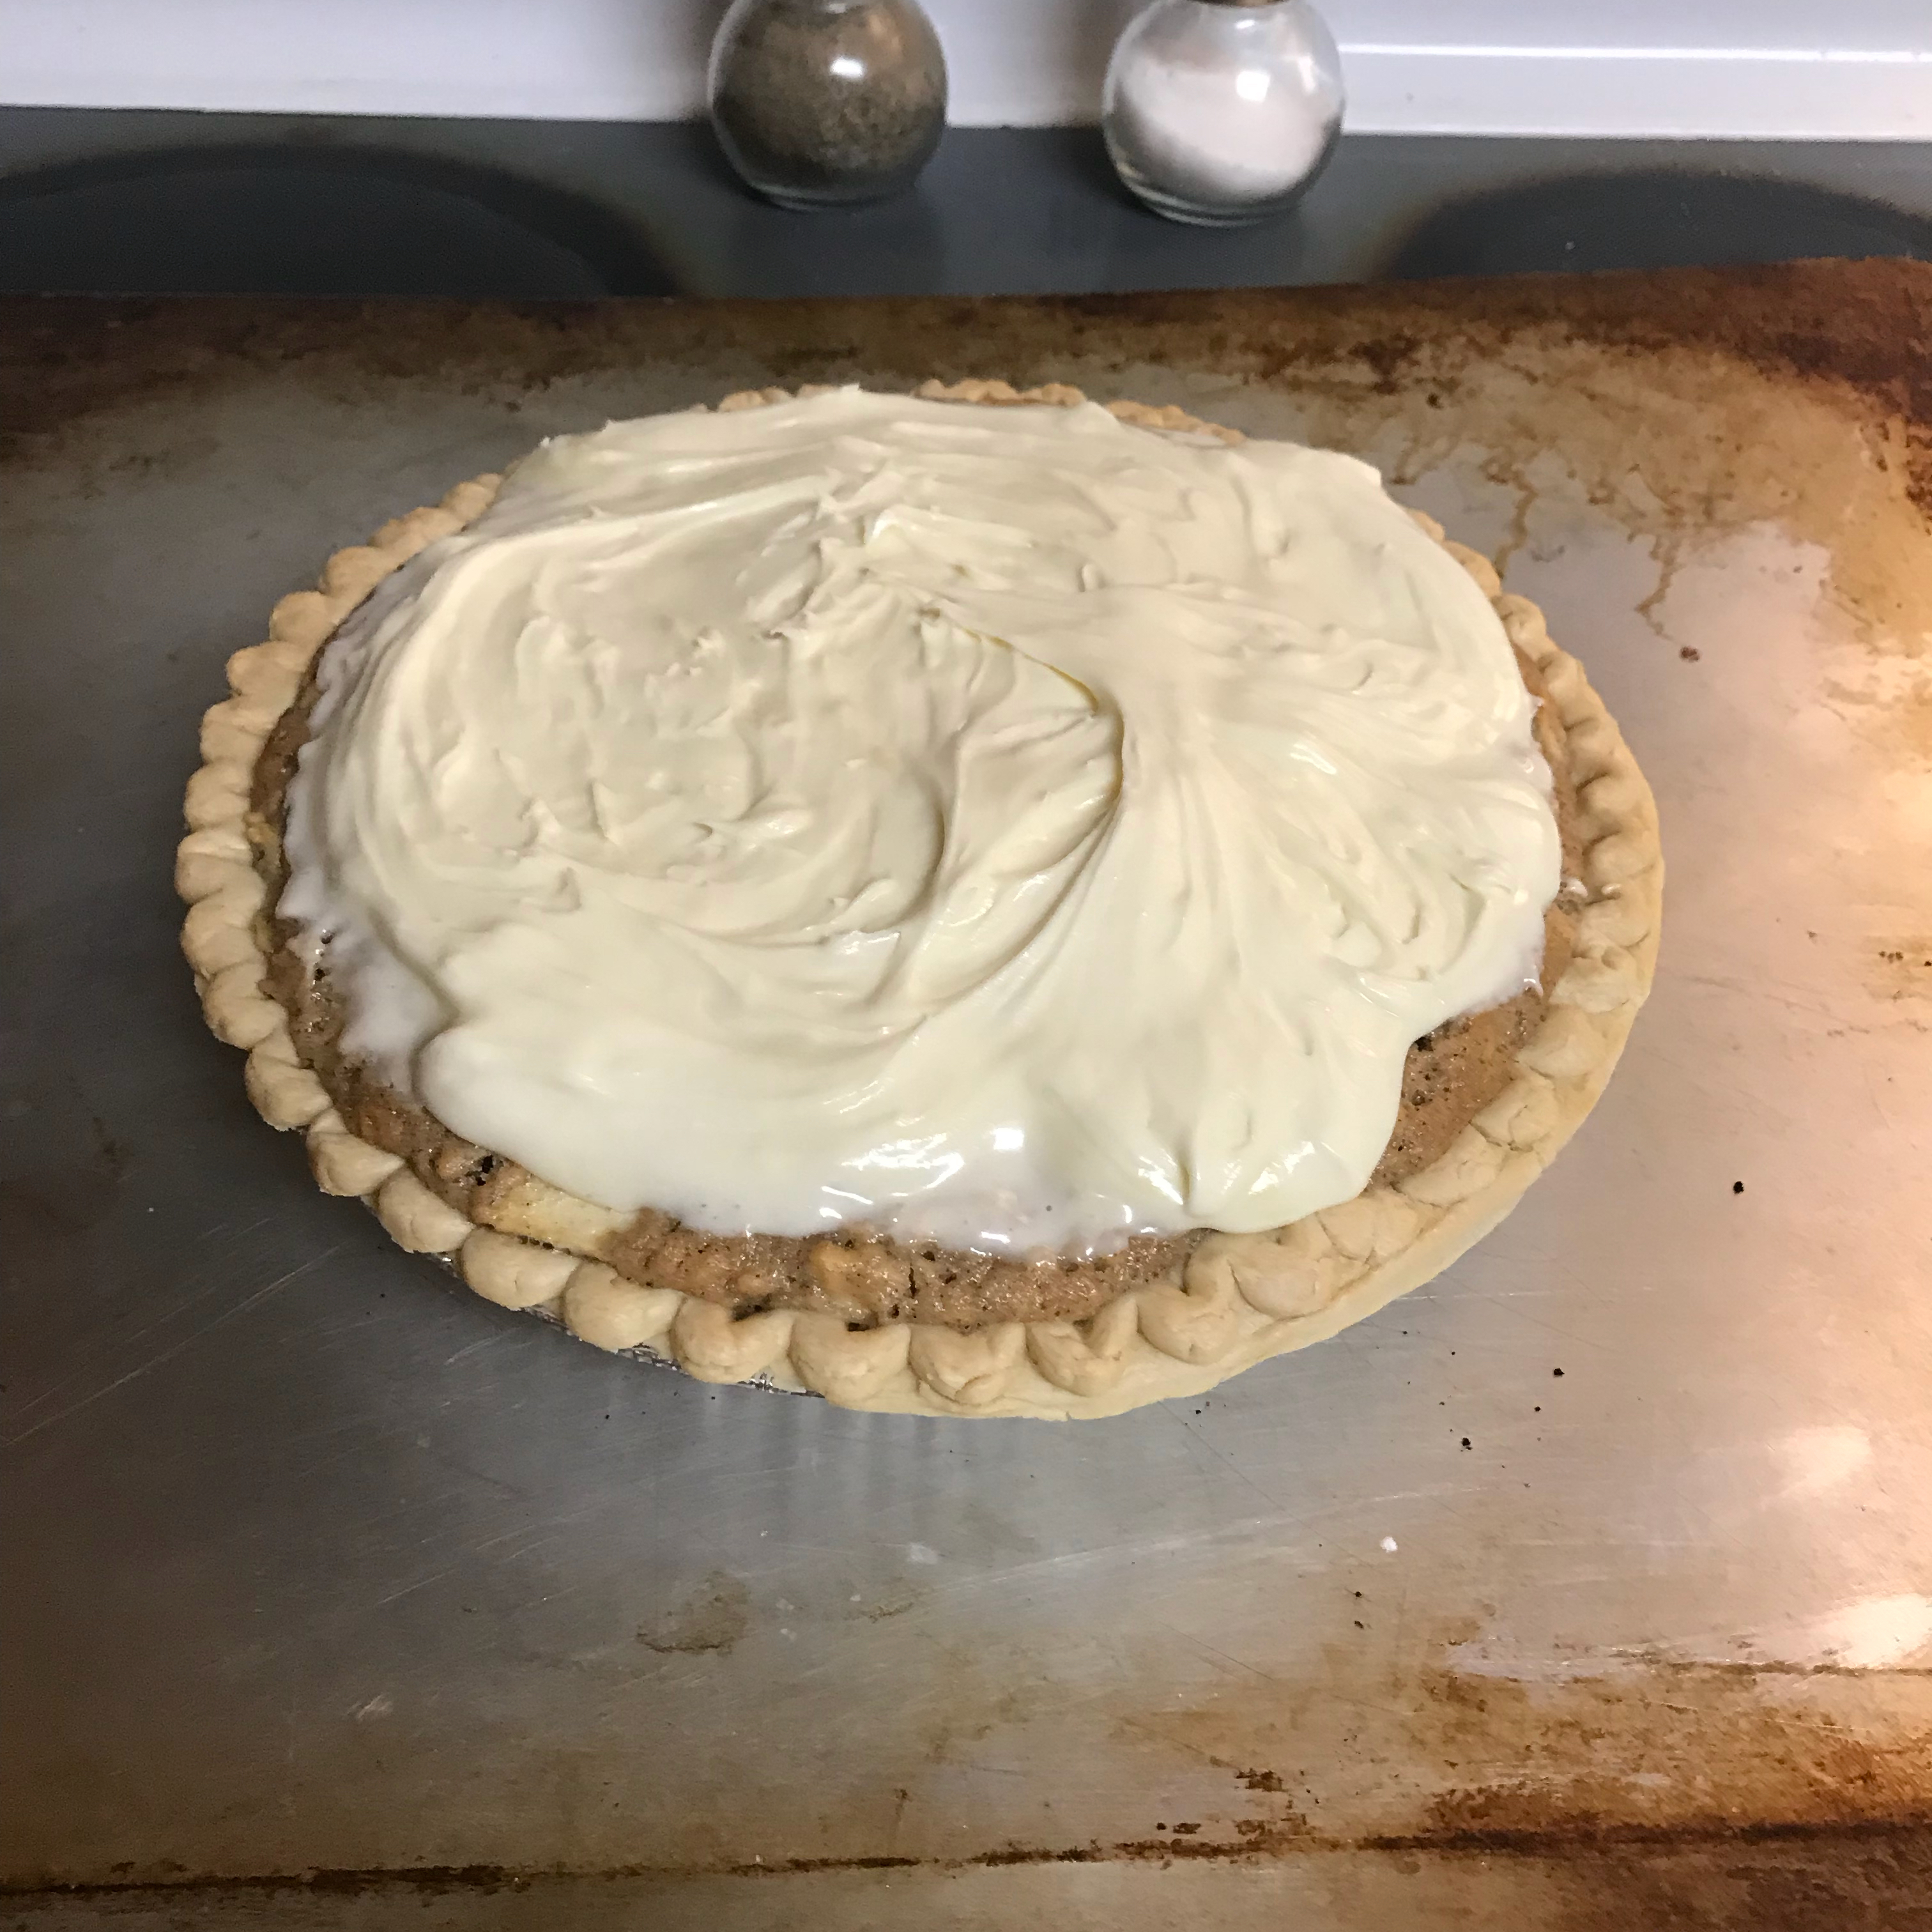 French Apple Pie with Cream Cheese Topping Bob McKeown